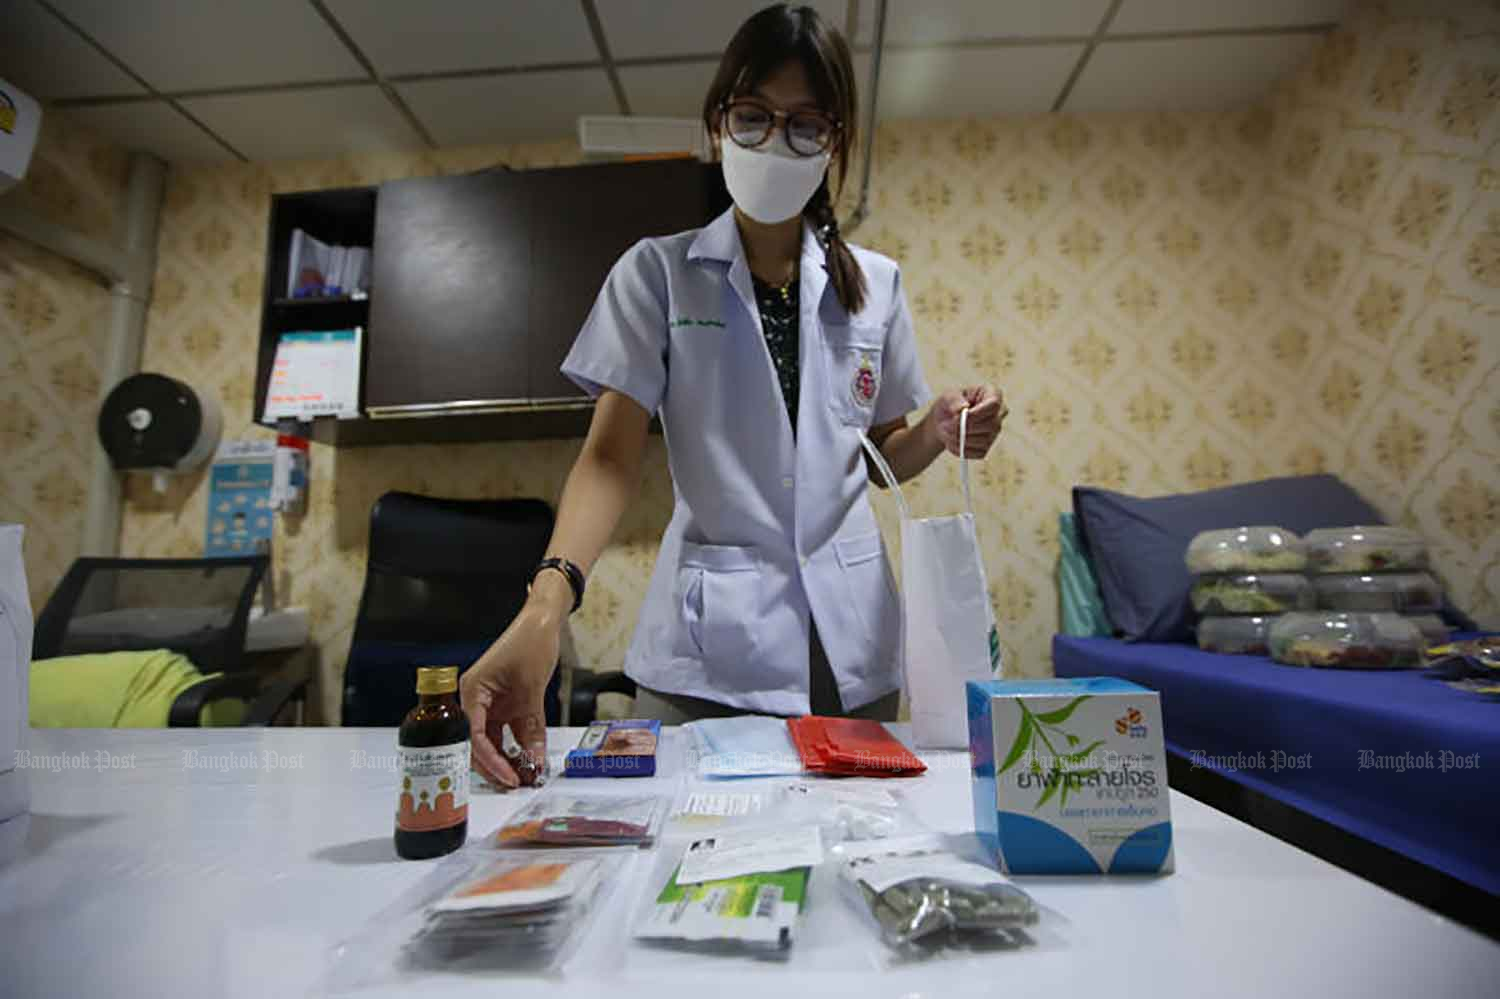 A doctor prepares medication to be delivered to Covid-19 patients under home isolation in Kannayao district of Bangkok on Wednesday. The programme allows those with mild symptoms to stay at home, in order to help ease workloads at hospitals. (Photo: Varuth Hirunyatheb)